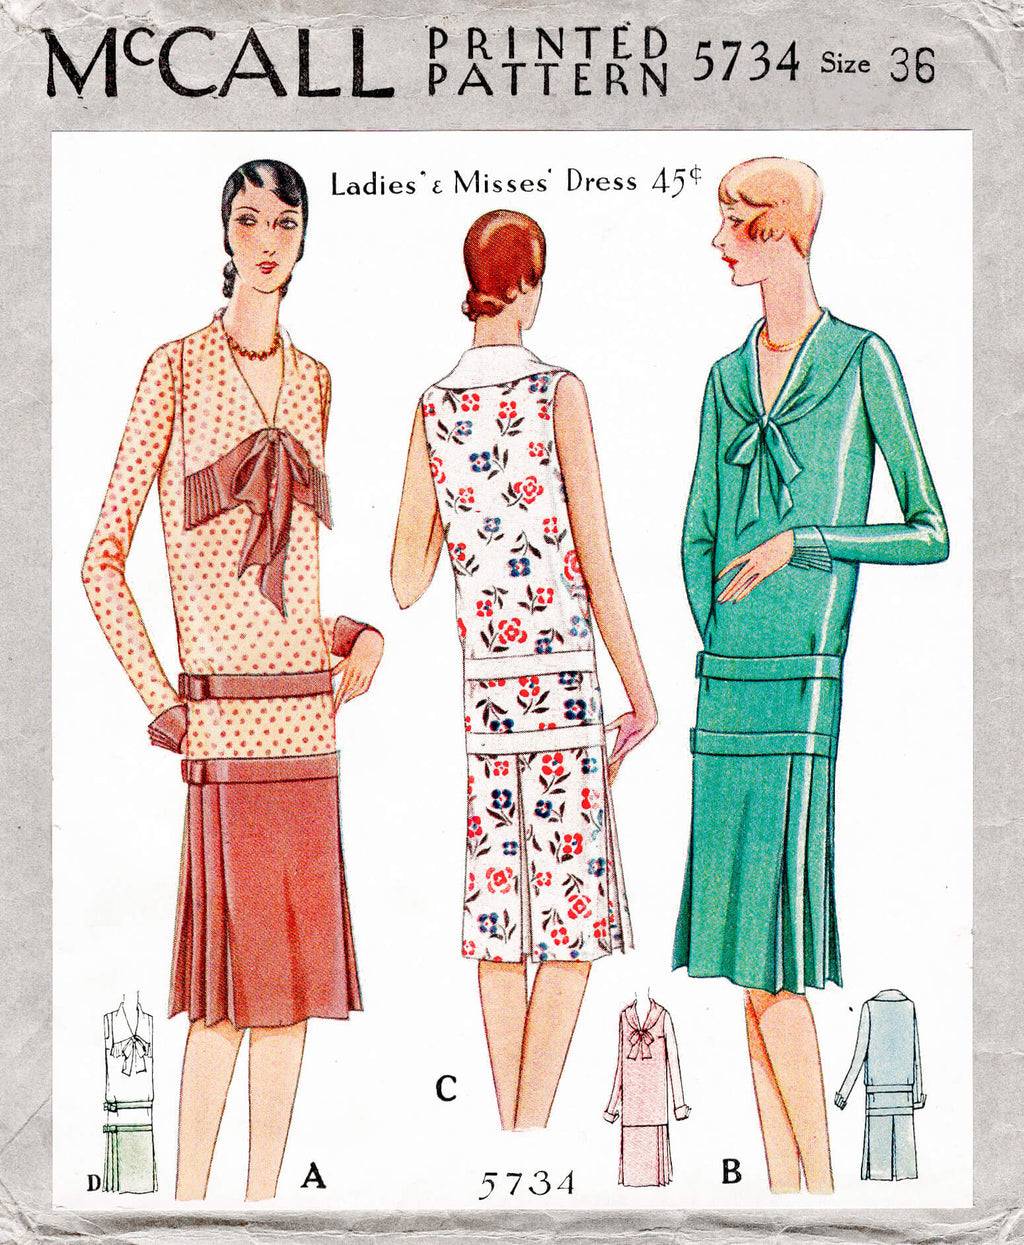 McCall 5734 1920s 1930s drop waist dress wide collar bow fastening vintage sewing pattern reproduction